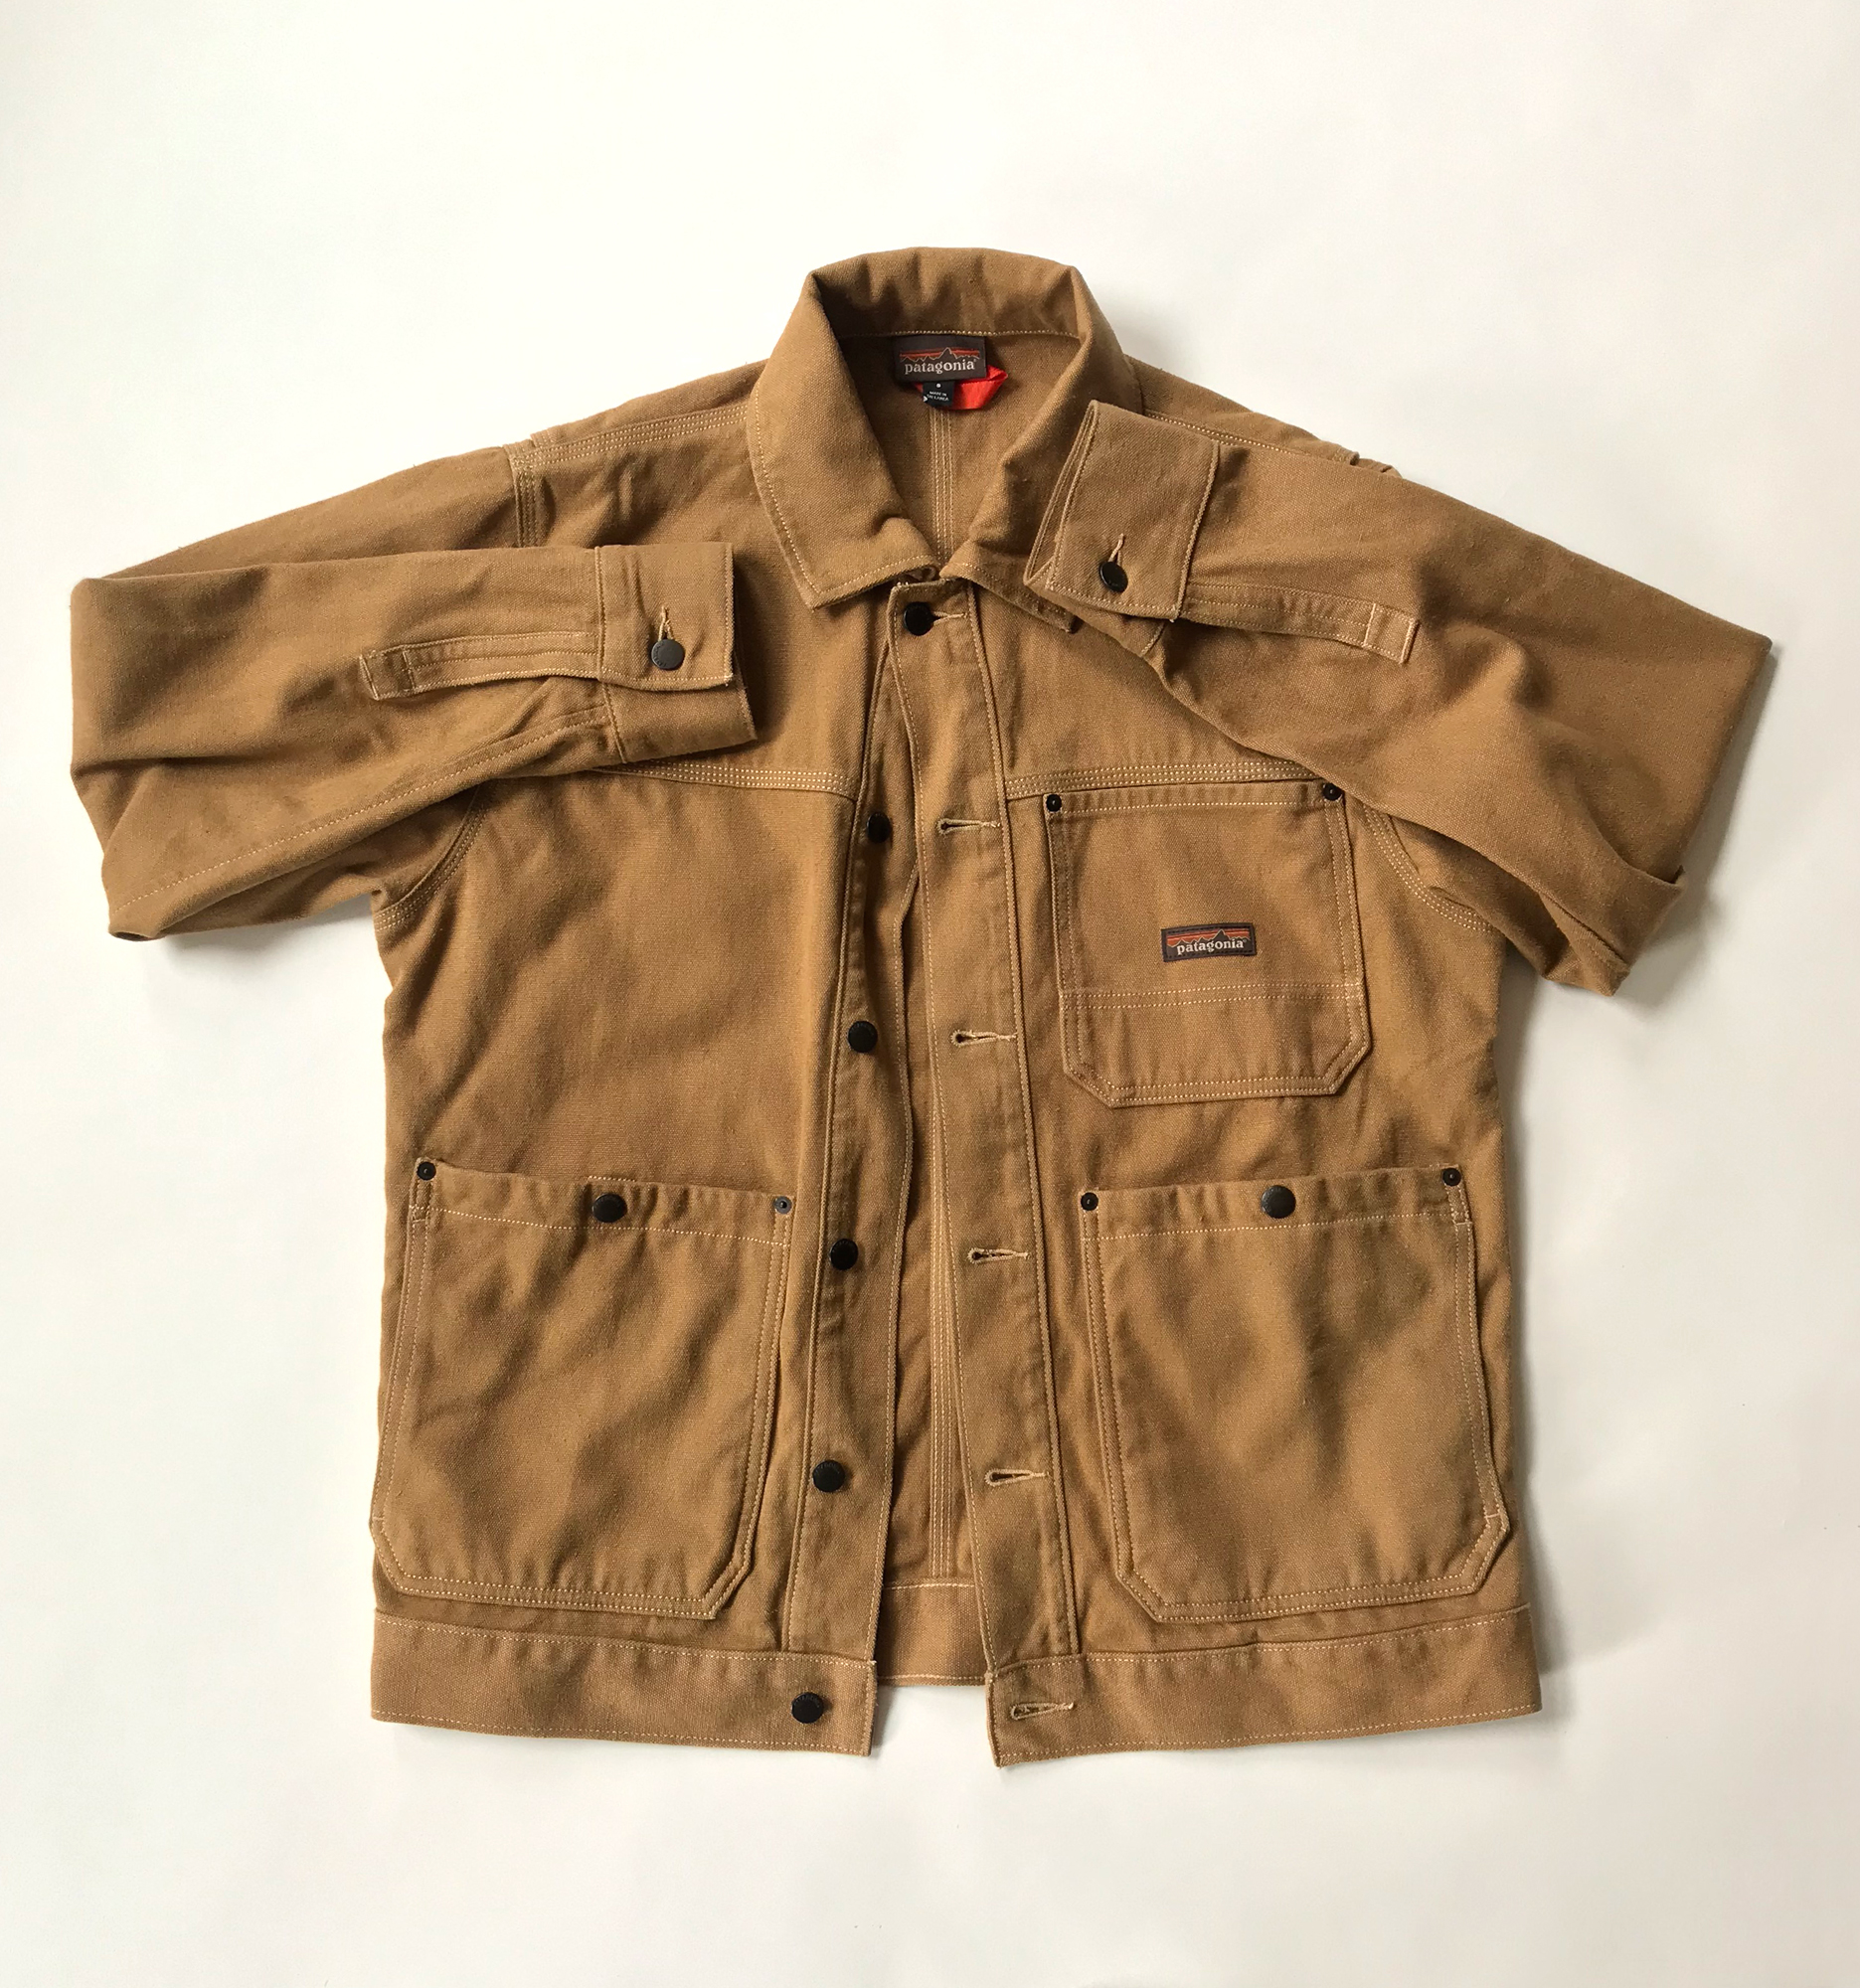 ee706d55e0960 Patagonia Iron Forge Hemp Canvas Chore Coat | Grailed